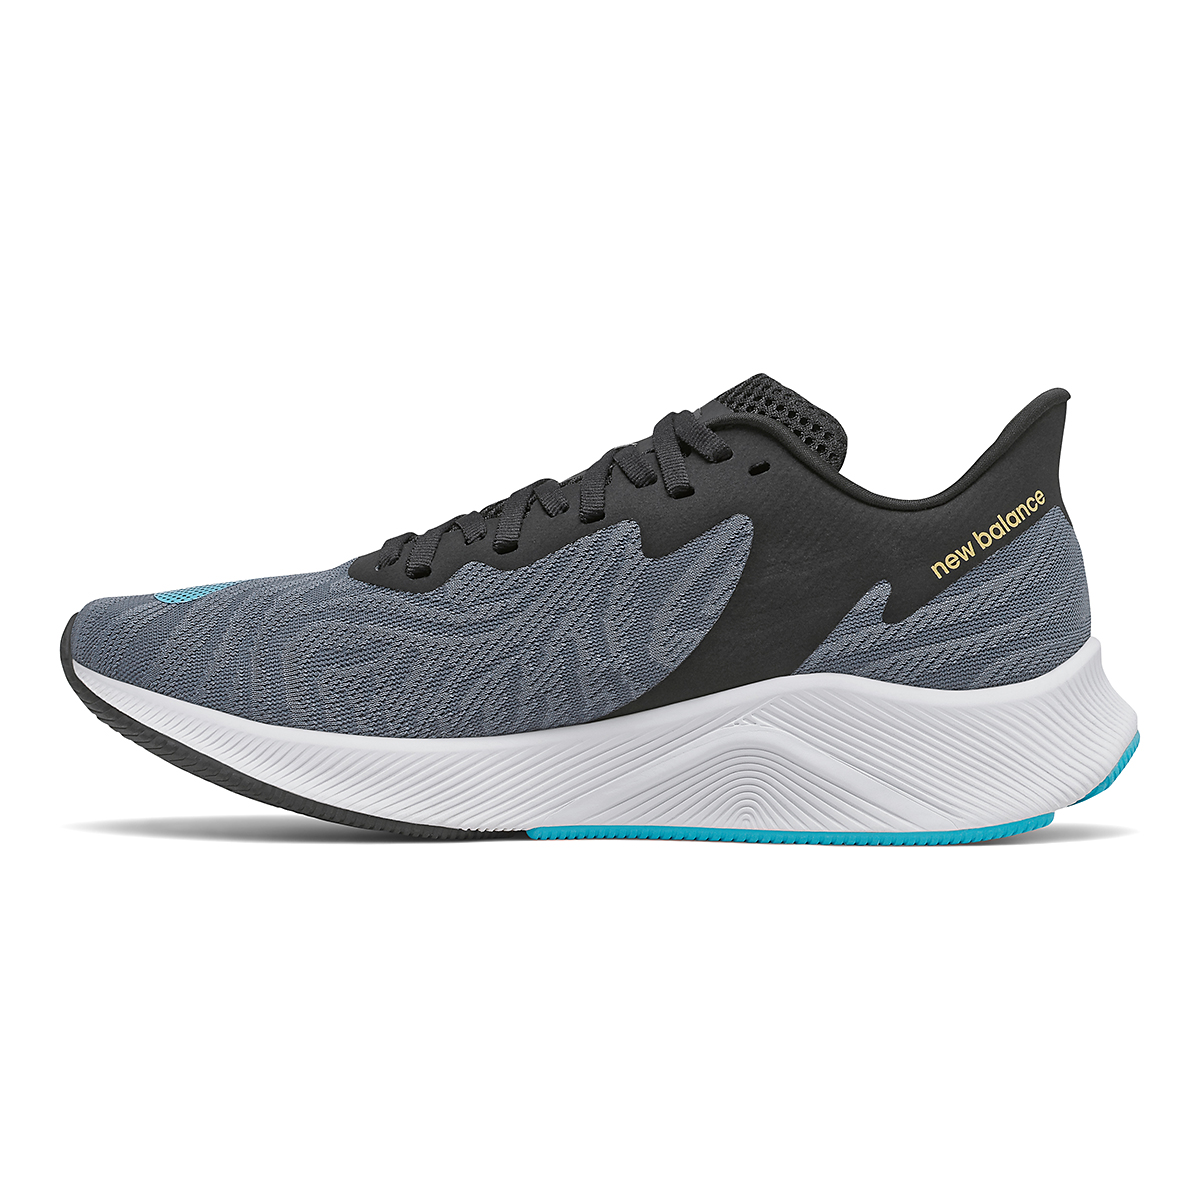 Men's New Balance Fuelcell Prism Running Shoe - Color: Ocean Grey/Virtual Sky - Size: 7 - Width: Wide, Ocean Grey/Virtual Sky, large, image 2